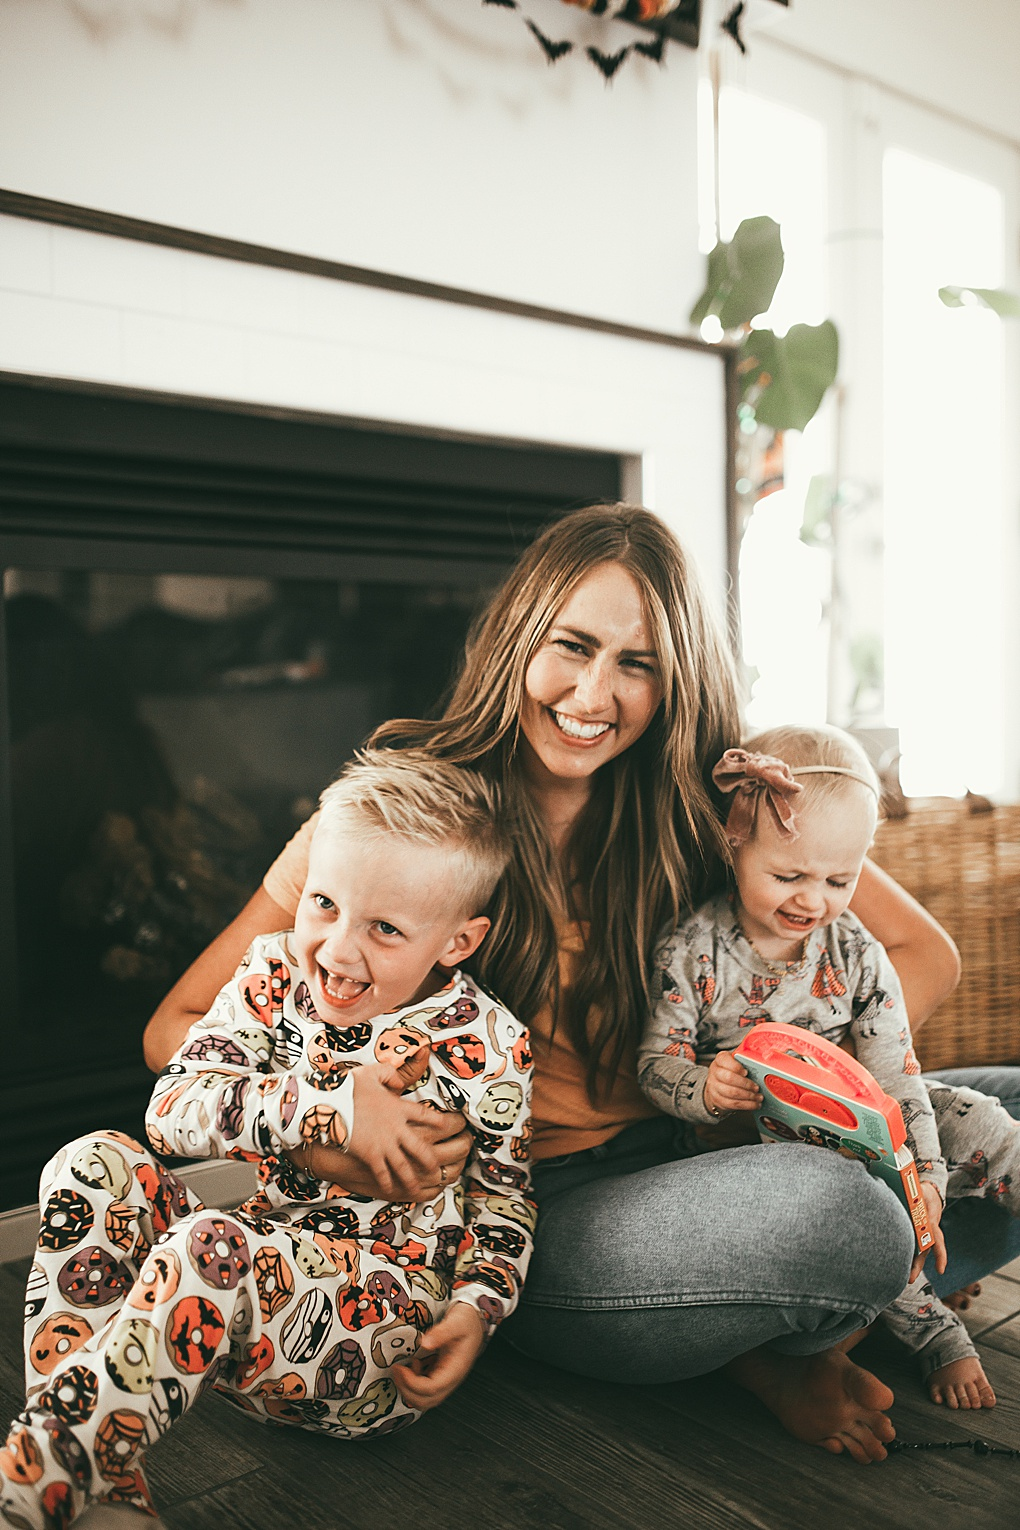 Halloween activities with your kids are something that can be so fun! Utah blogger Dani Marie shares simple halloween and fall activities to do as a family.